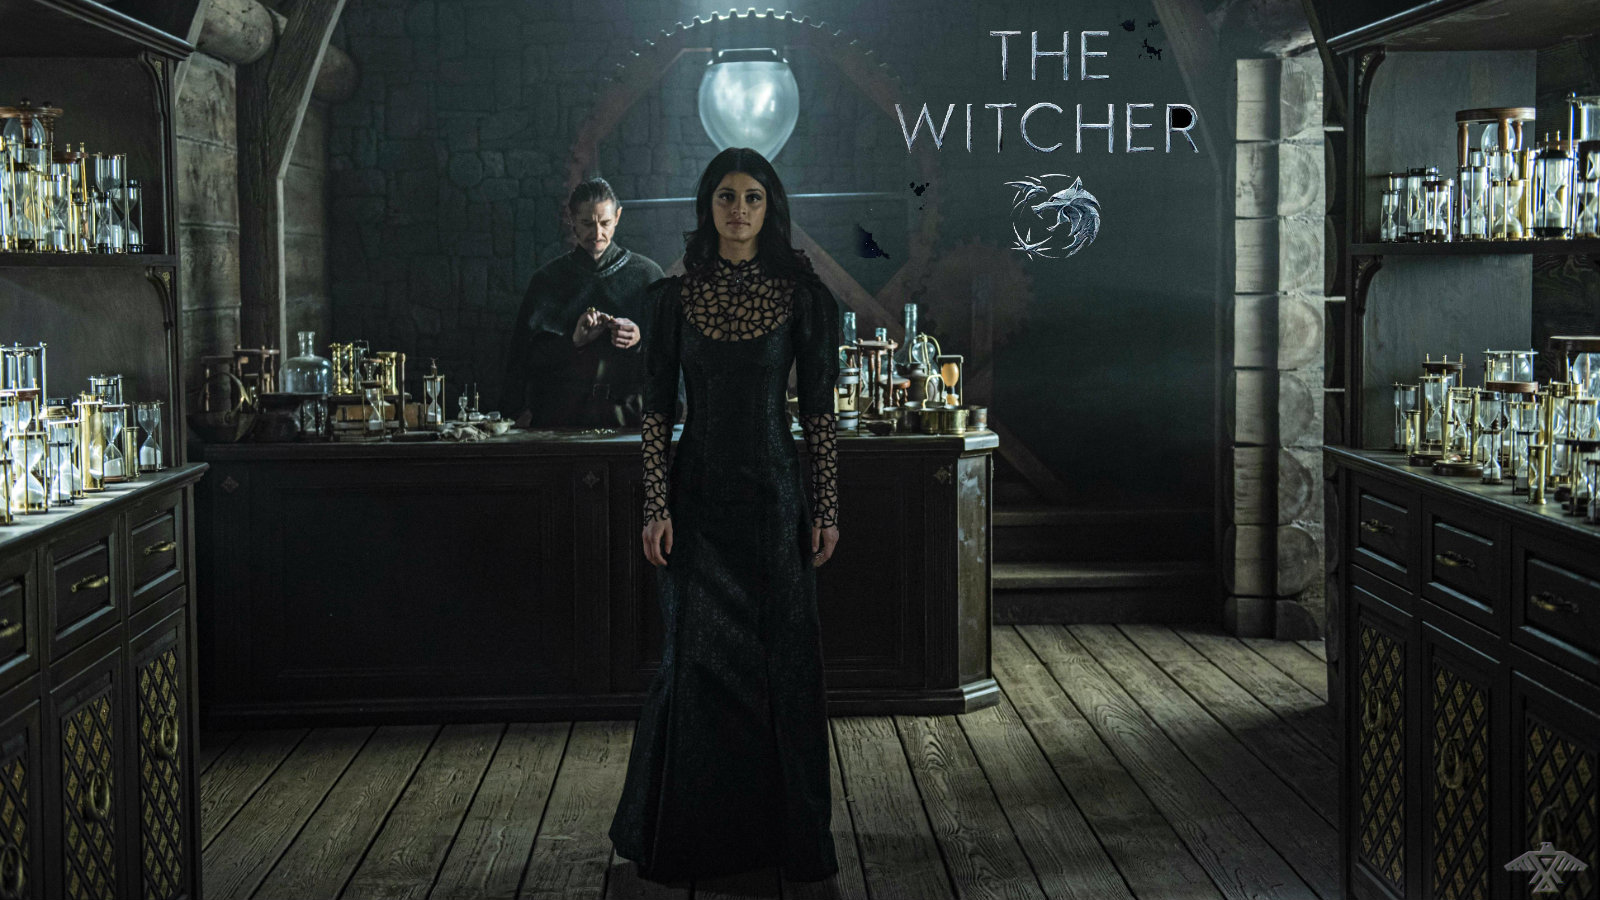 Yennefer The Witcher 2019 The Witcher Netflix